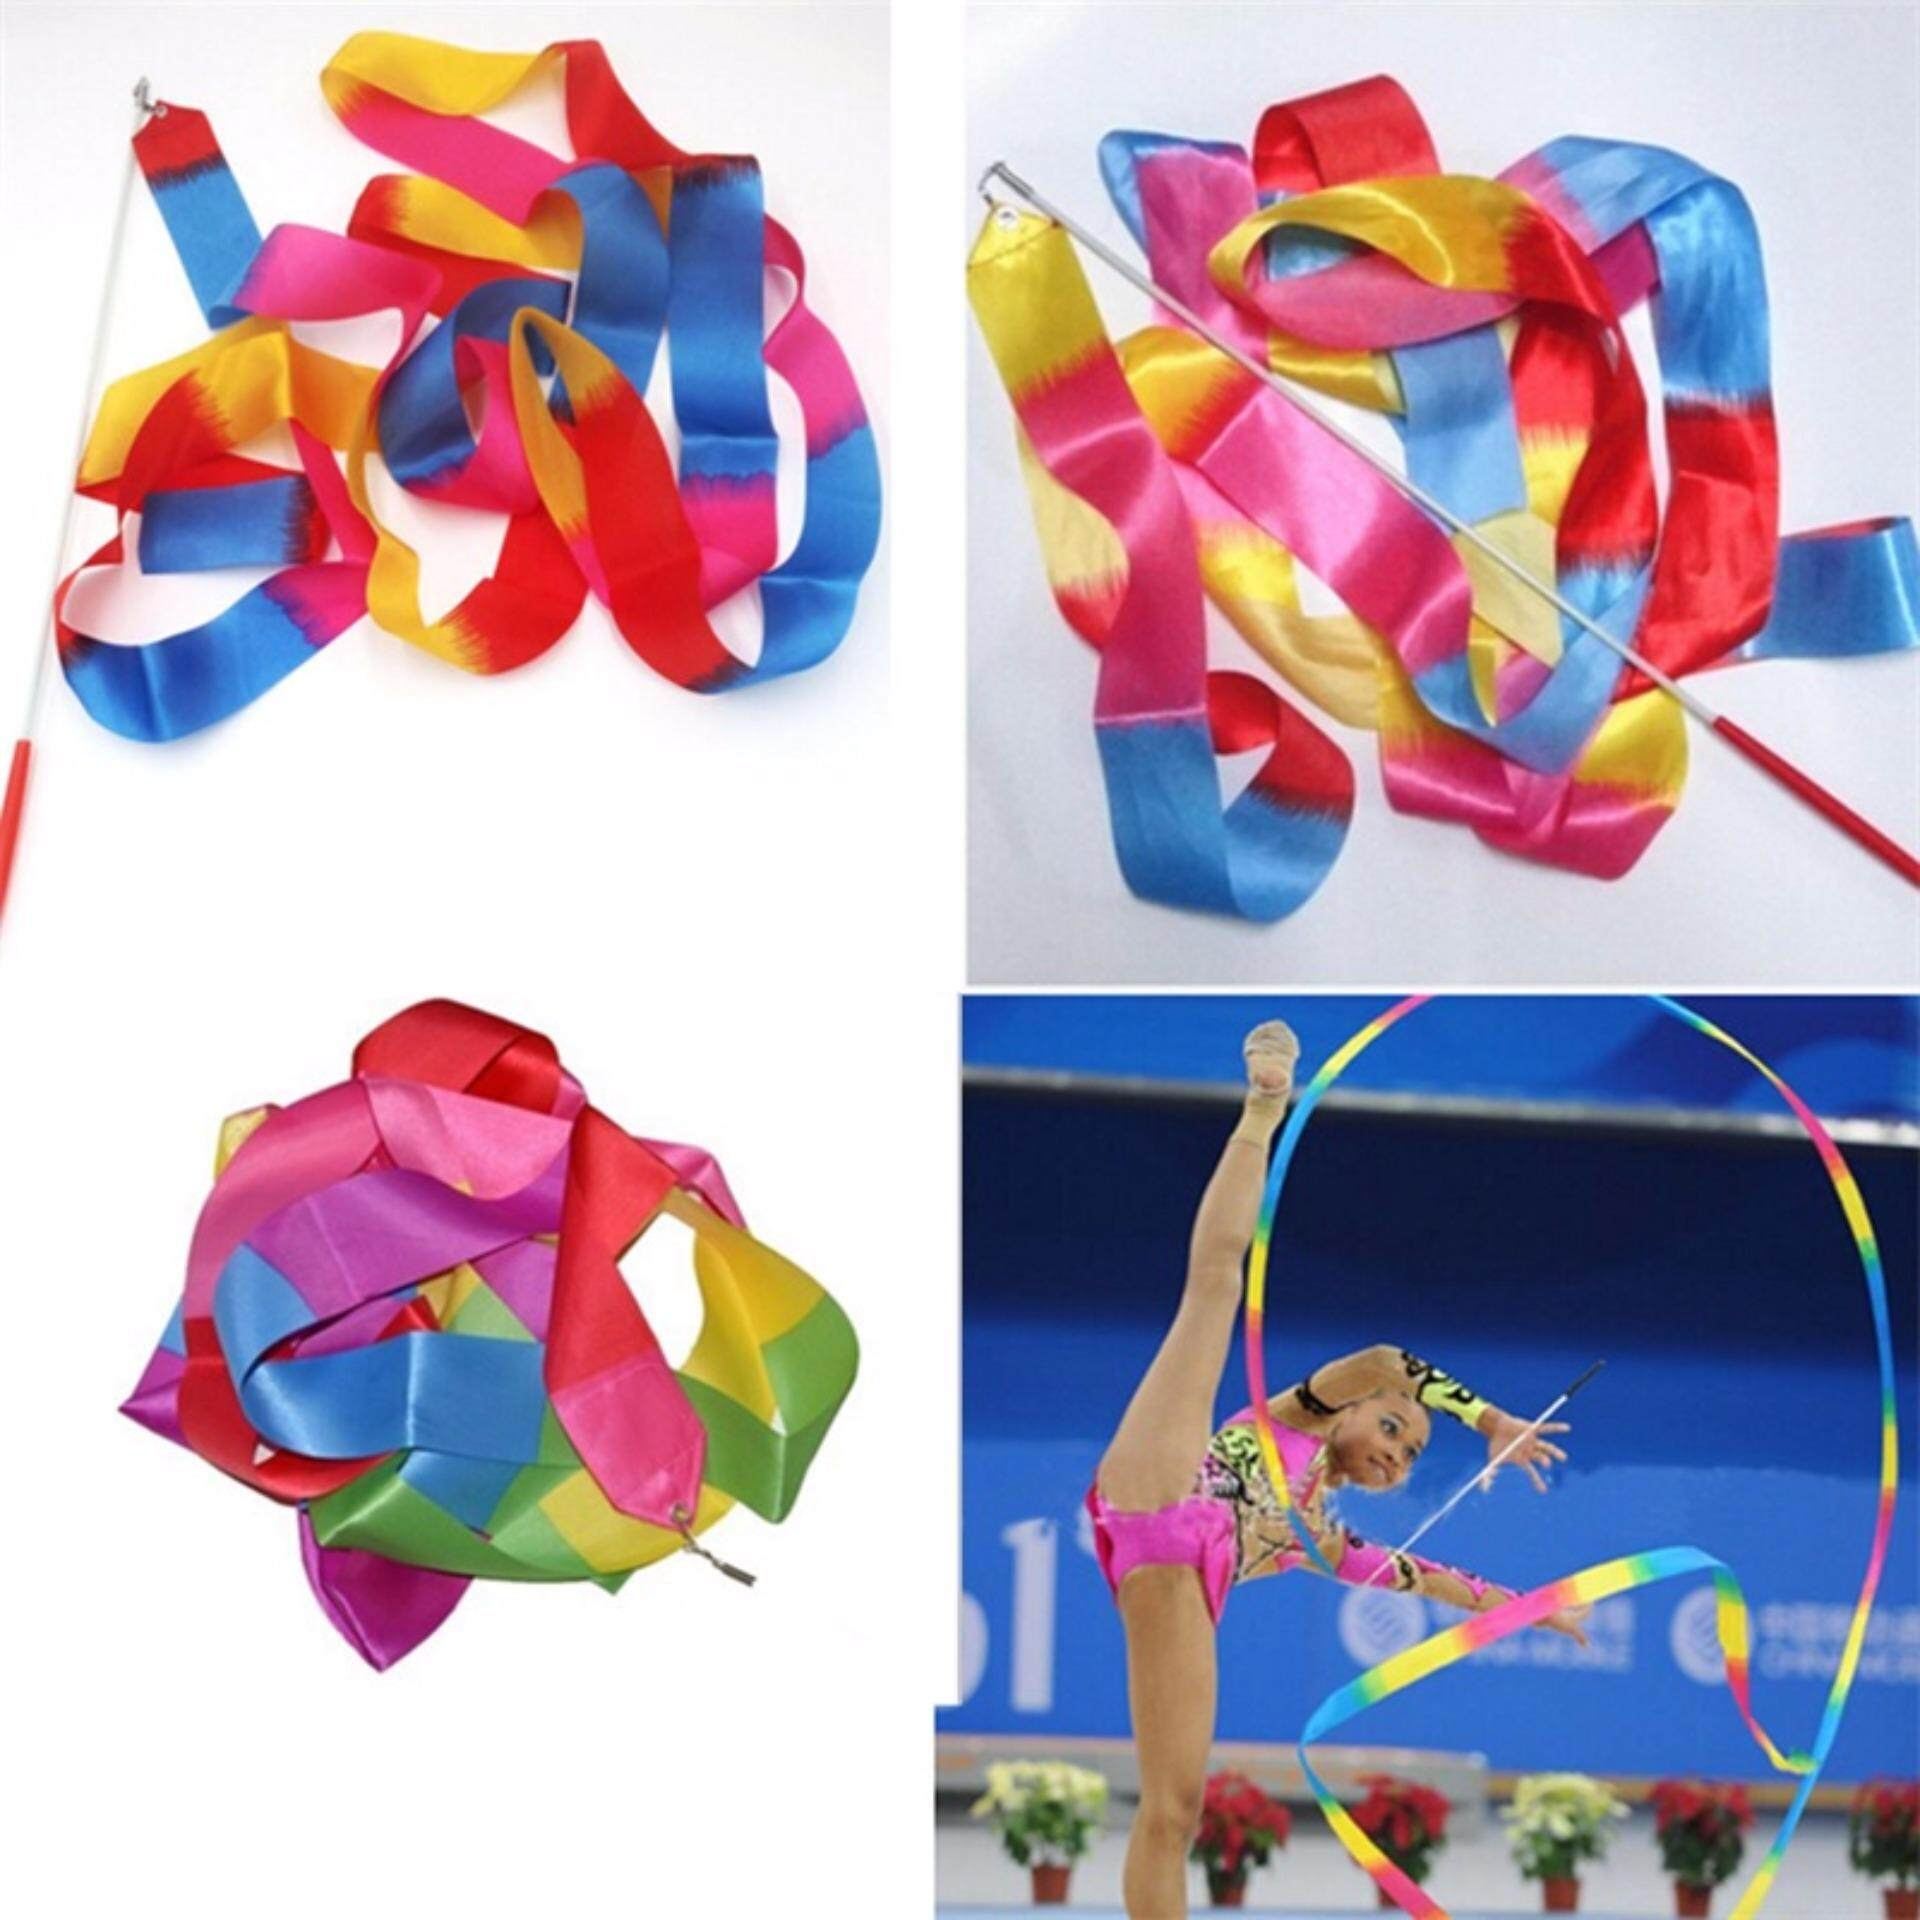 4m Kids Dance Ribbon Gym Rhythmic Art Gymnastic Ballet Streamer Twirling Rod By Mimar Upup.